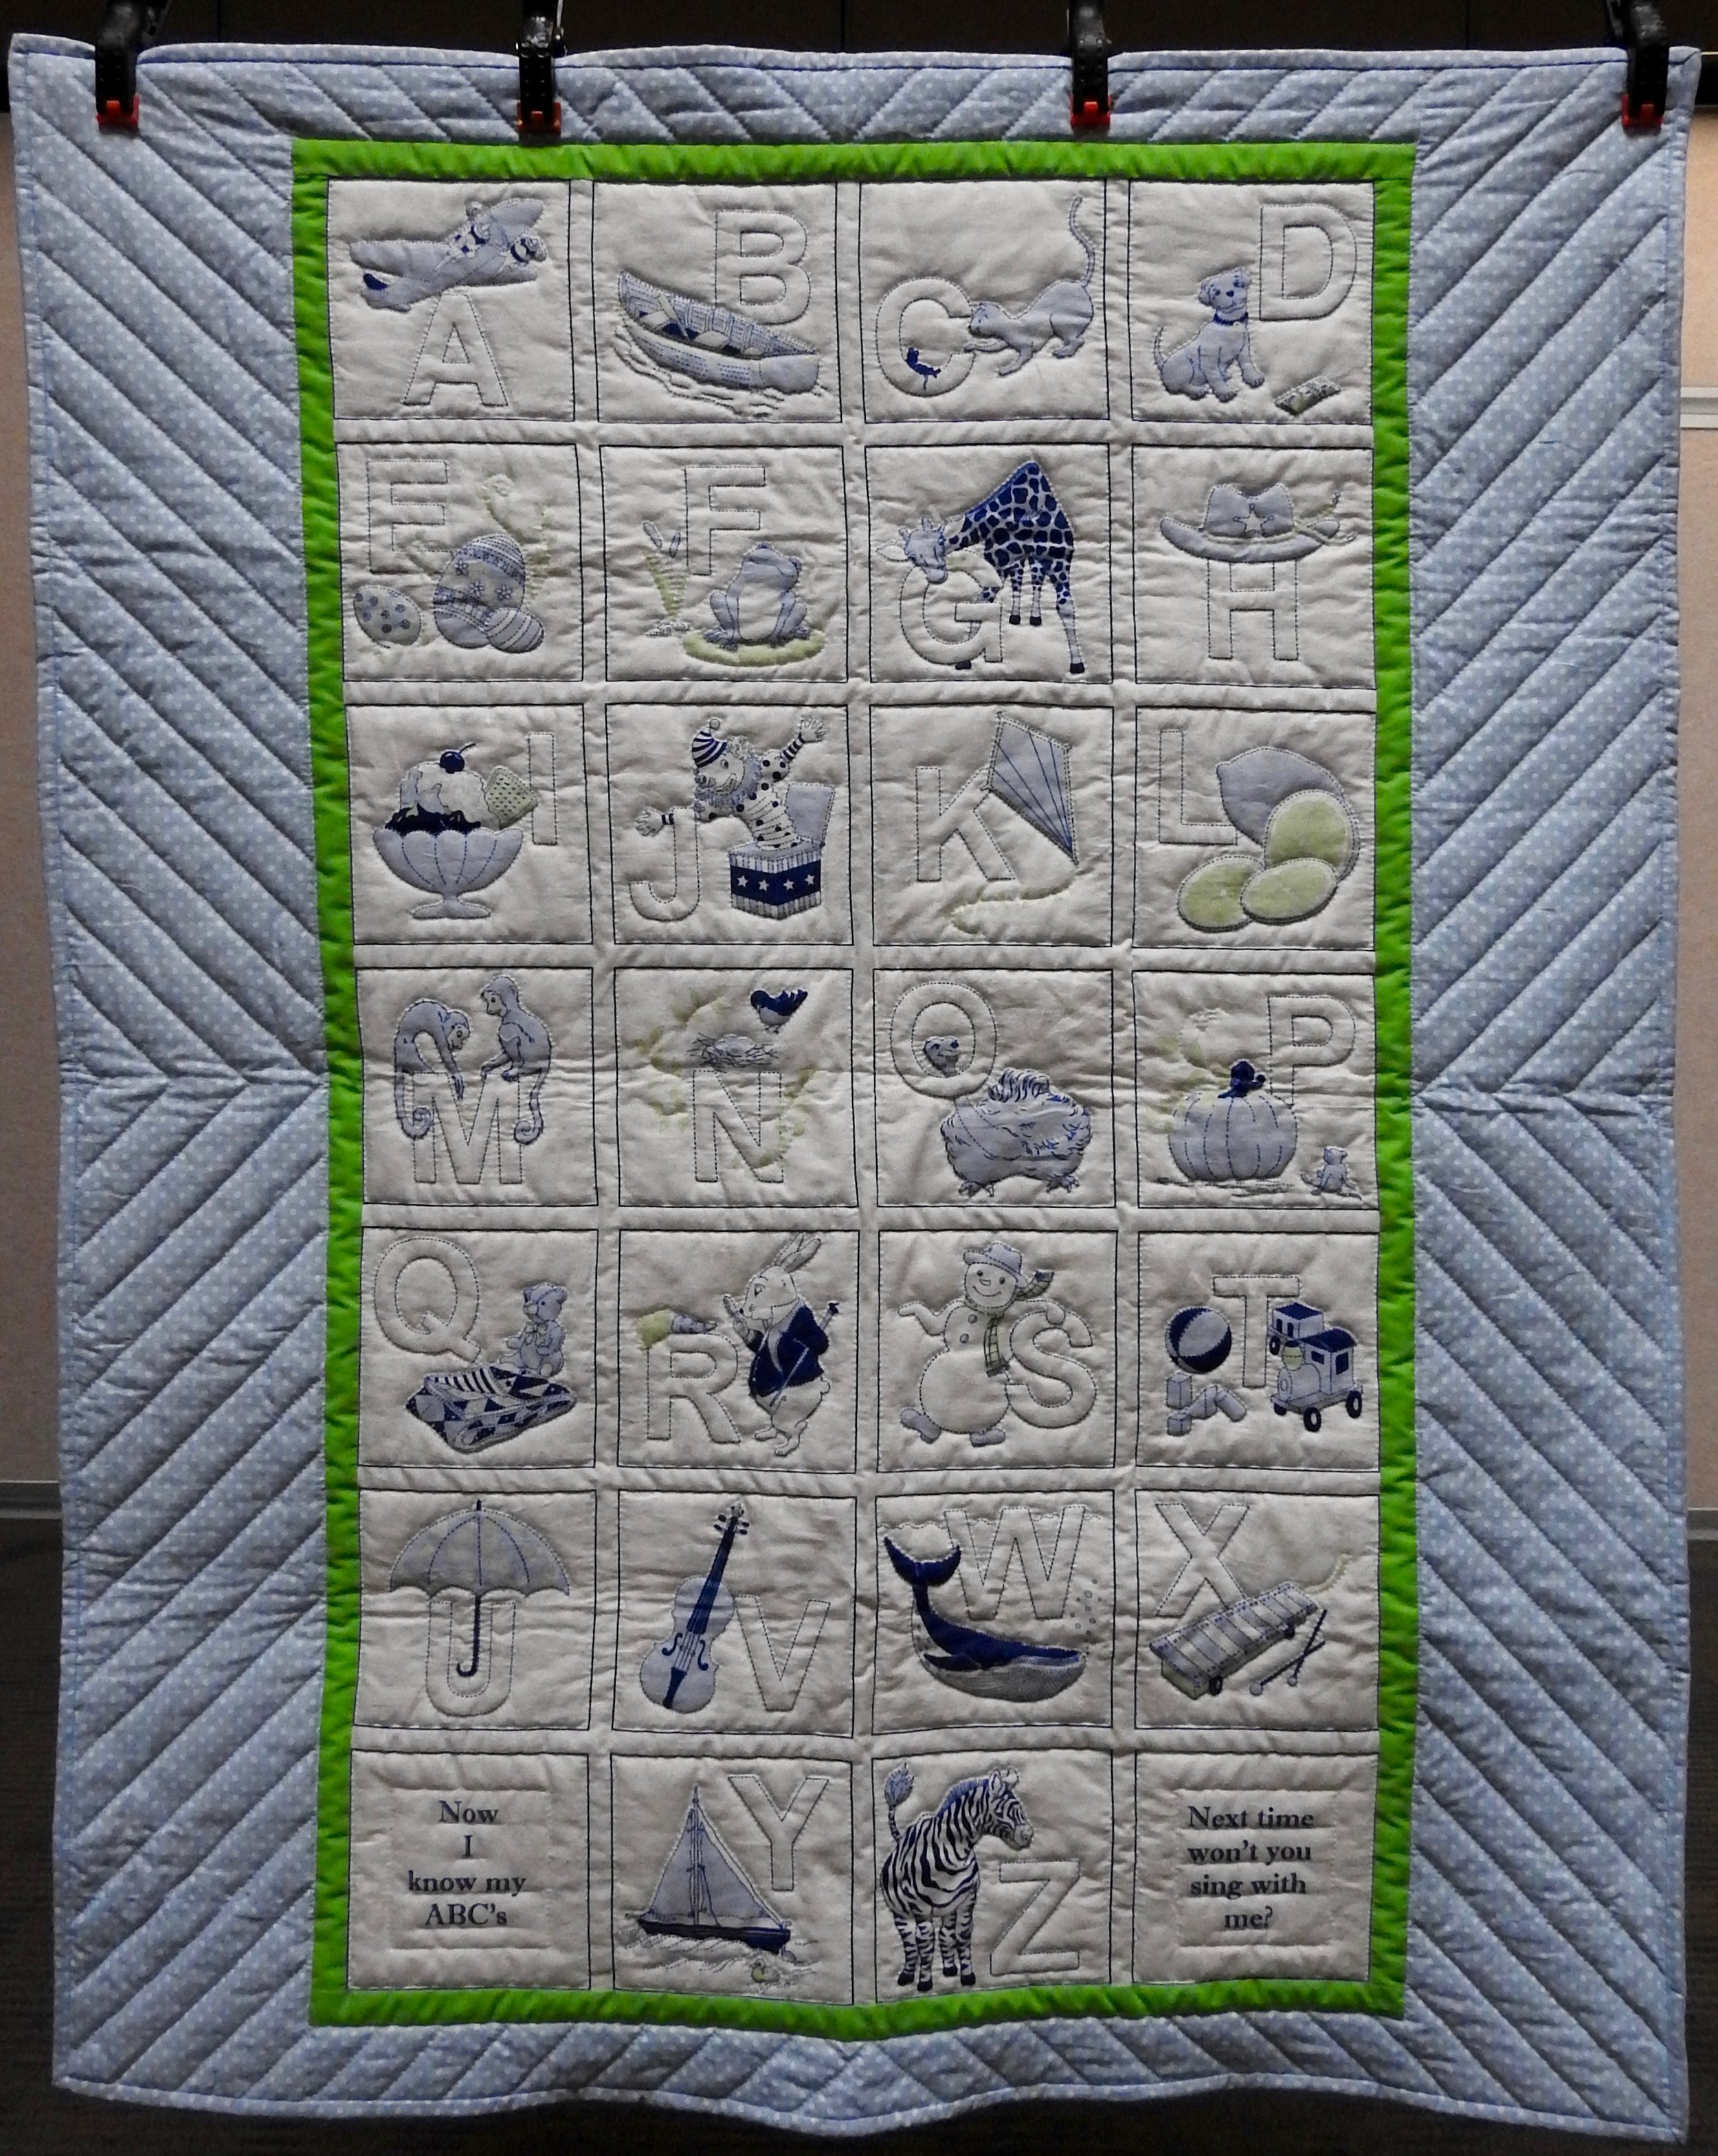 Alphabet Baby Quilt, Pre-printed fabric, Hand Quilted by Virginia A. Hartshough, 36 x 45